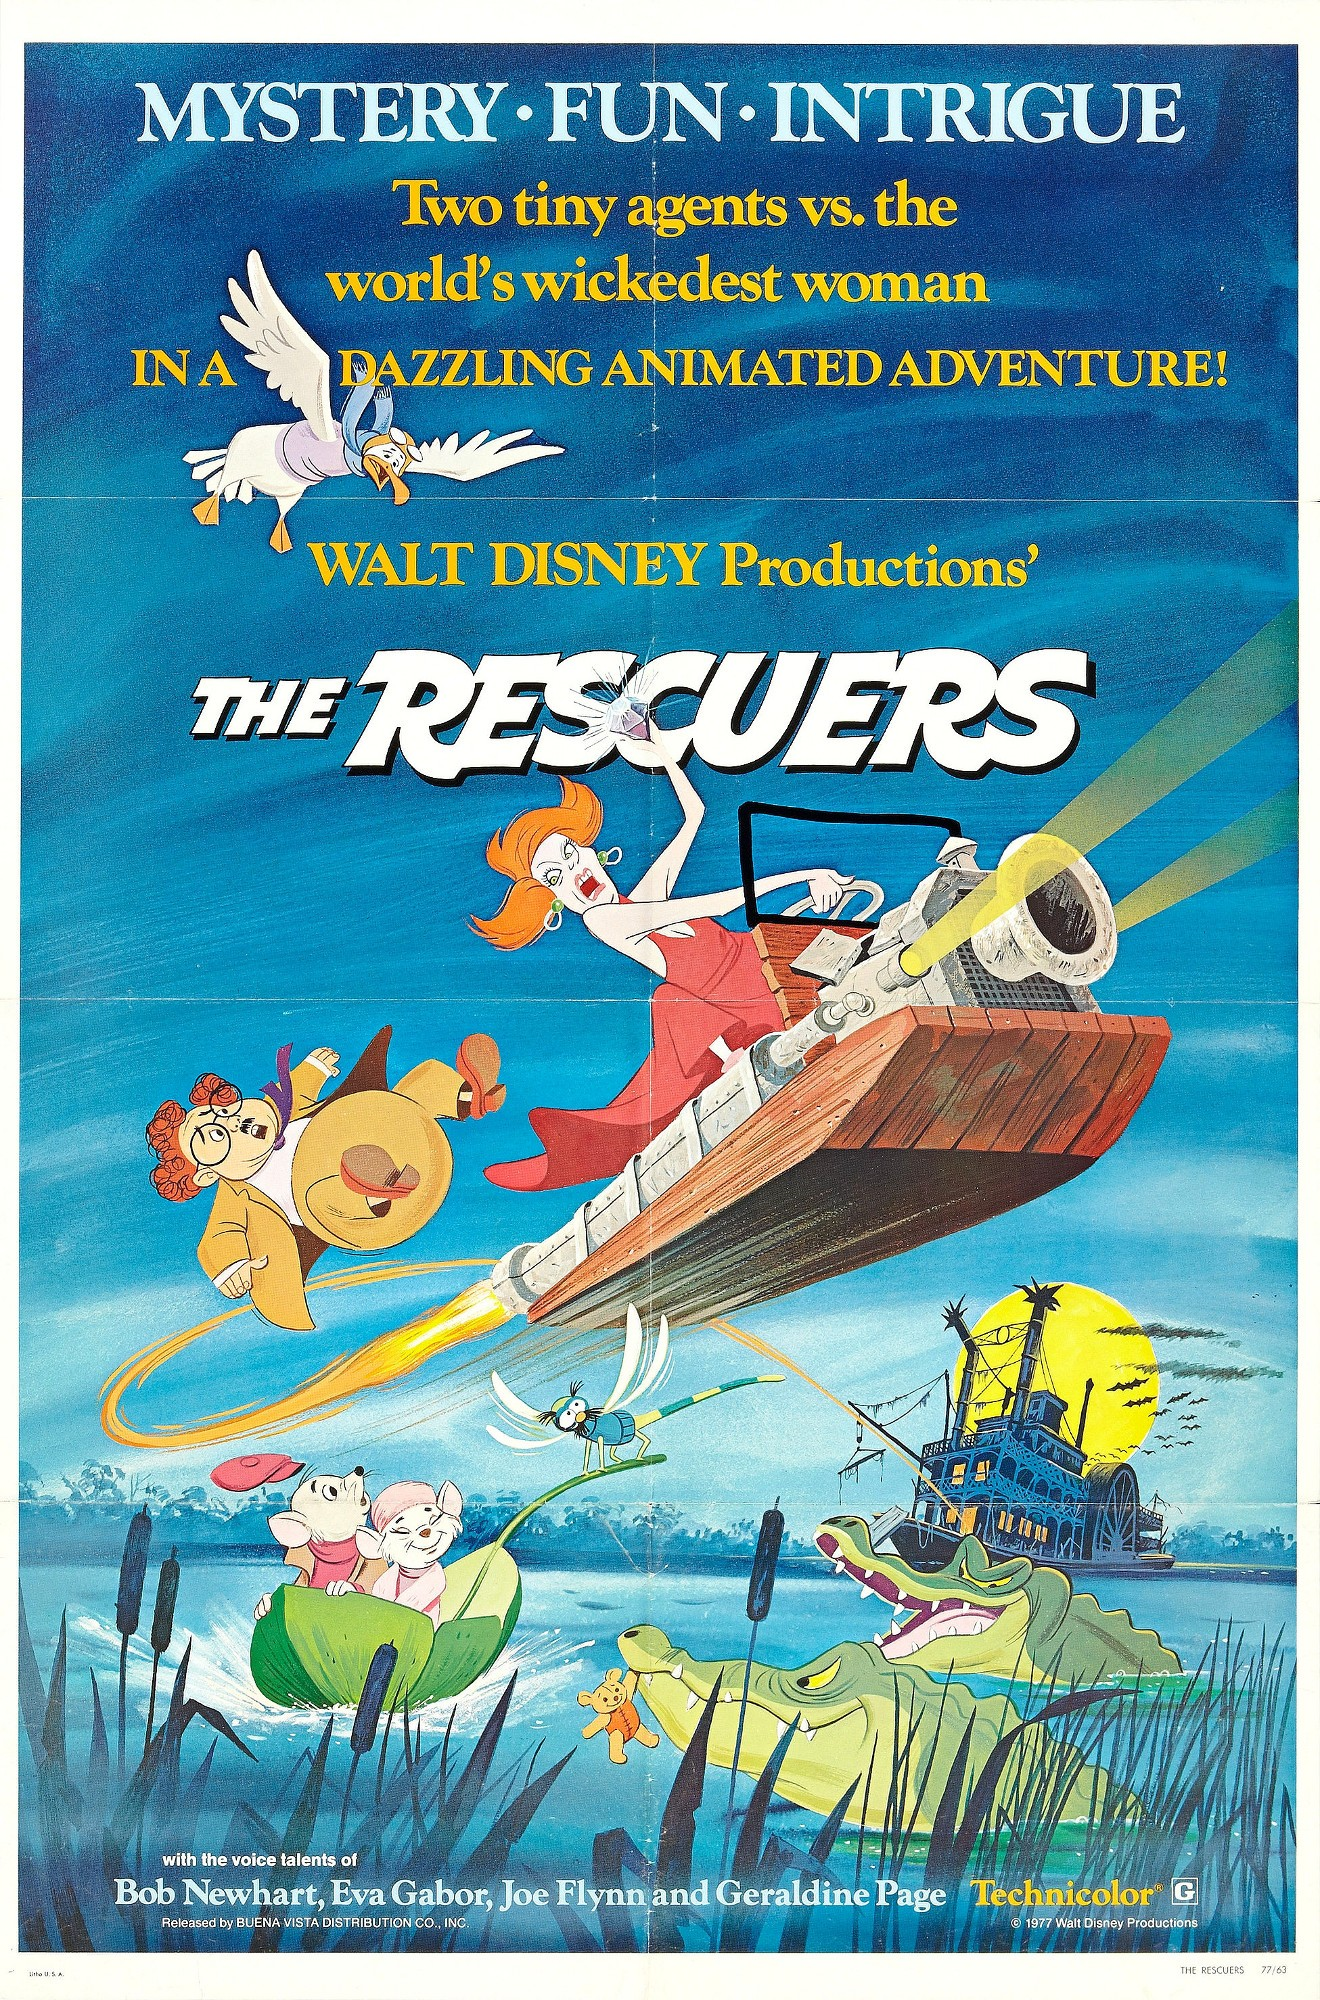 The Rescuers (1977; animated)